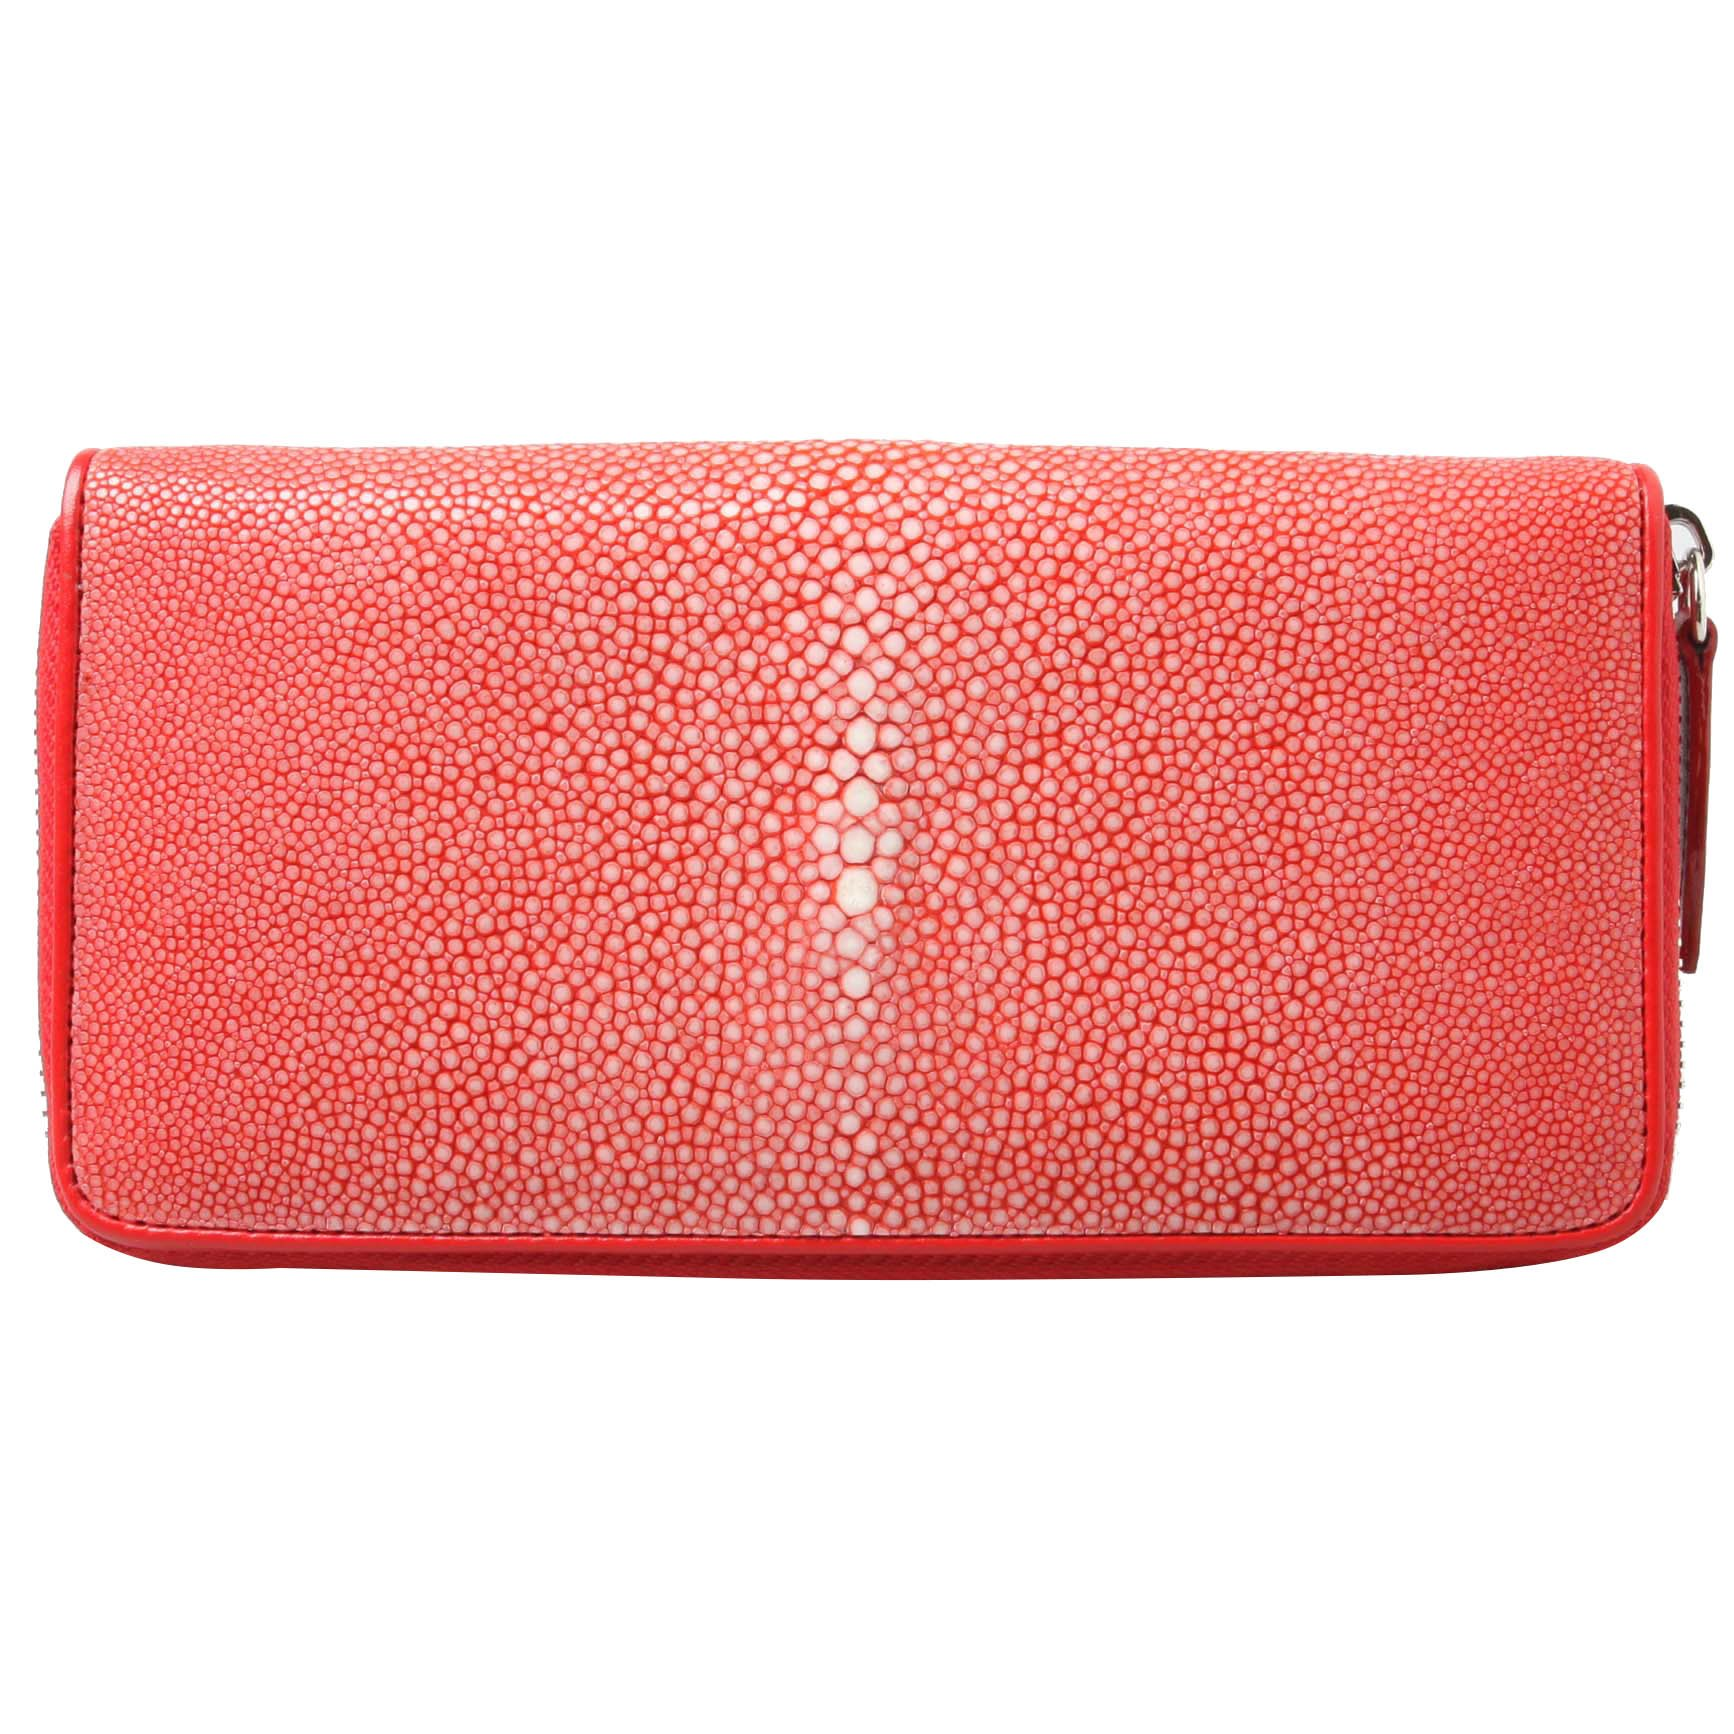 Genuine Polished Stingray Leather Red Clutch Women Zip Around Coin Wallet Purse by Kanthima